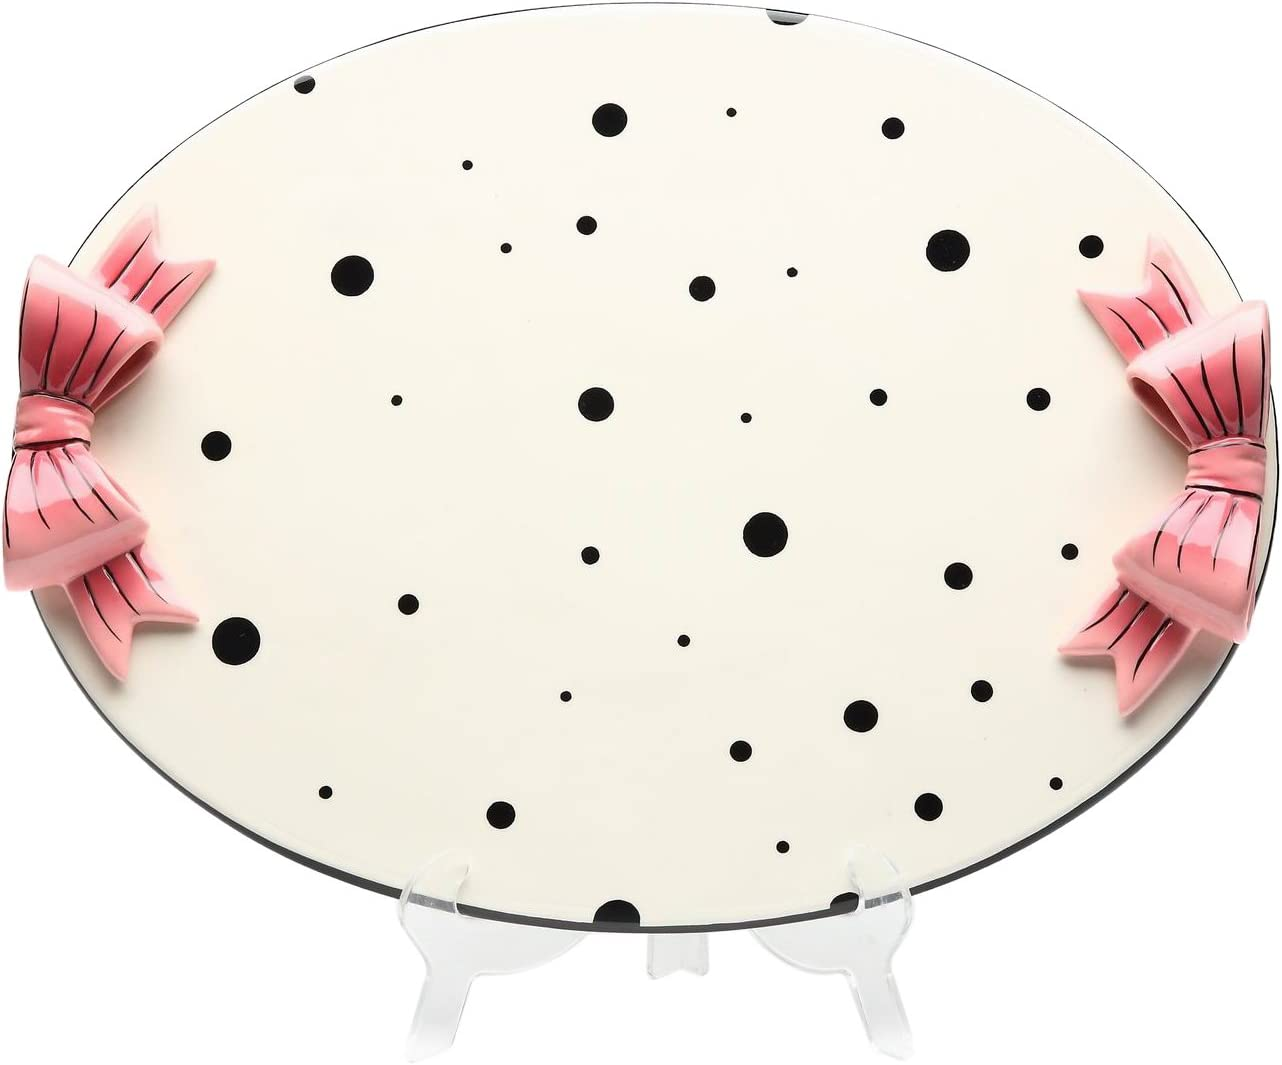 Appletree Design Dilly Dots Serving Tray, 13-5/8-Inch Long